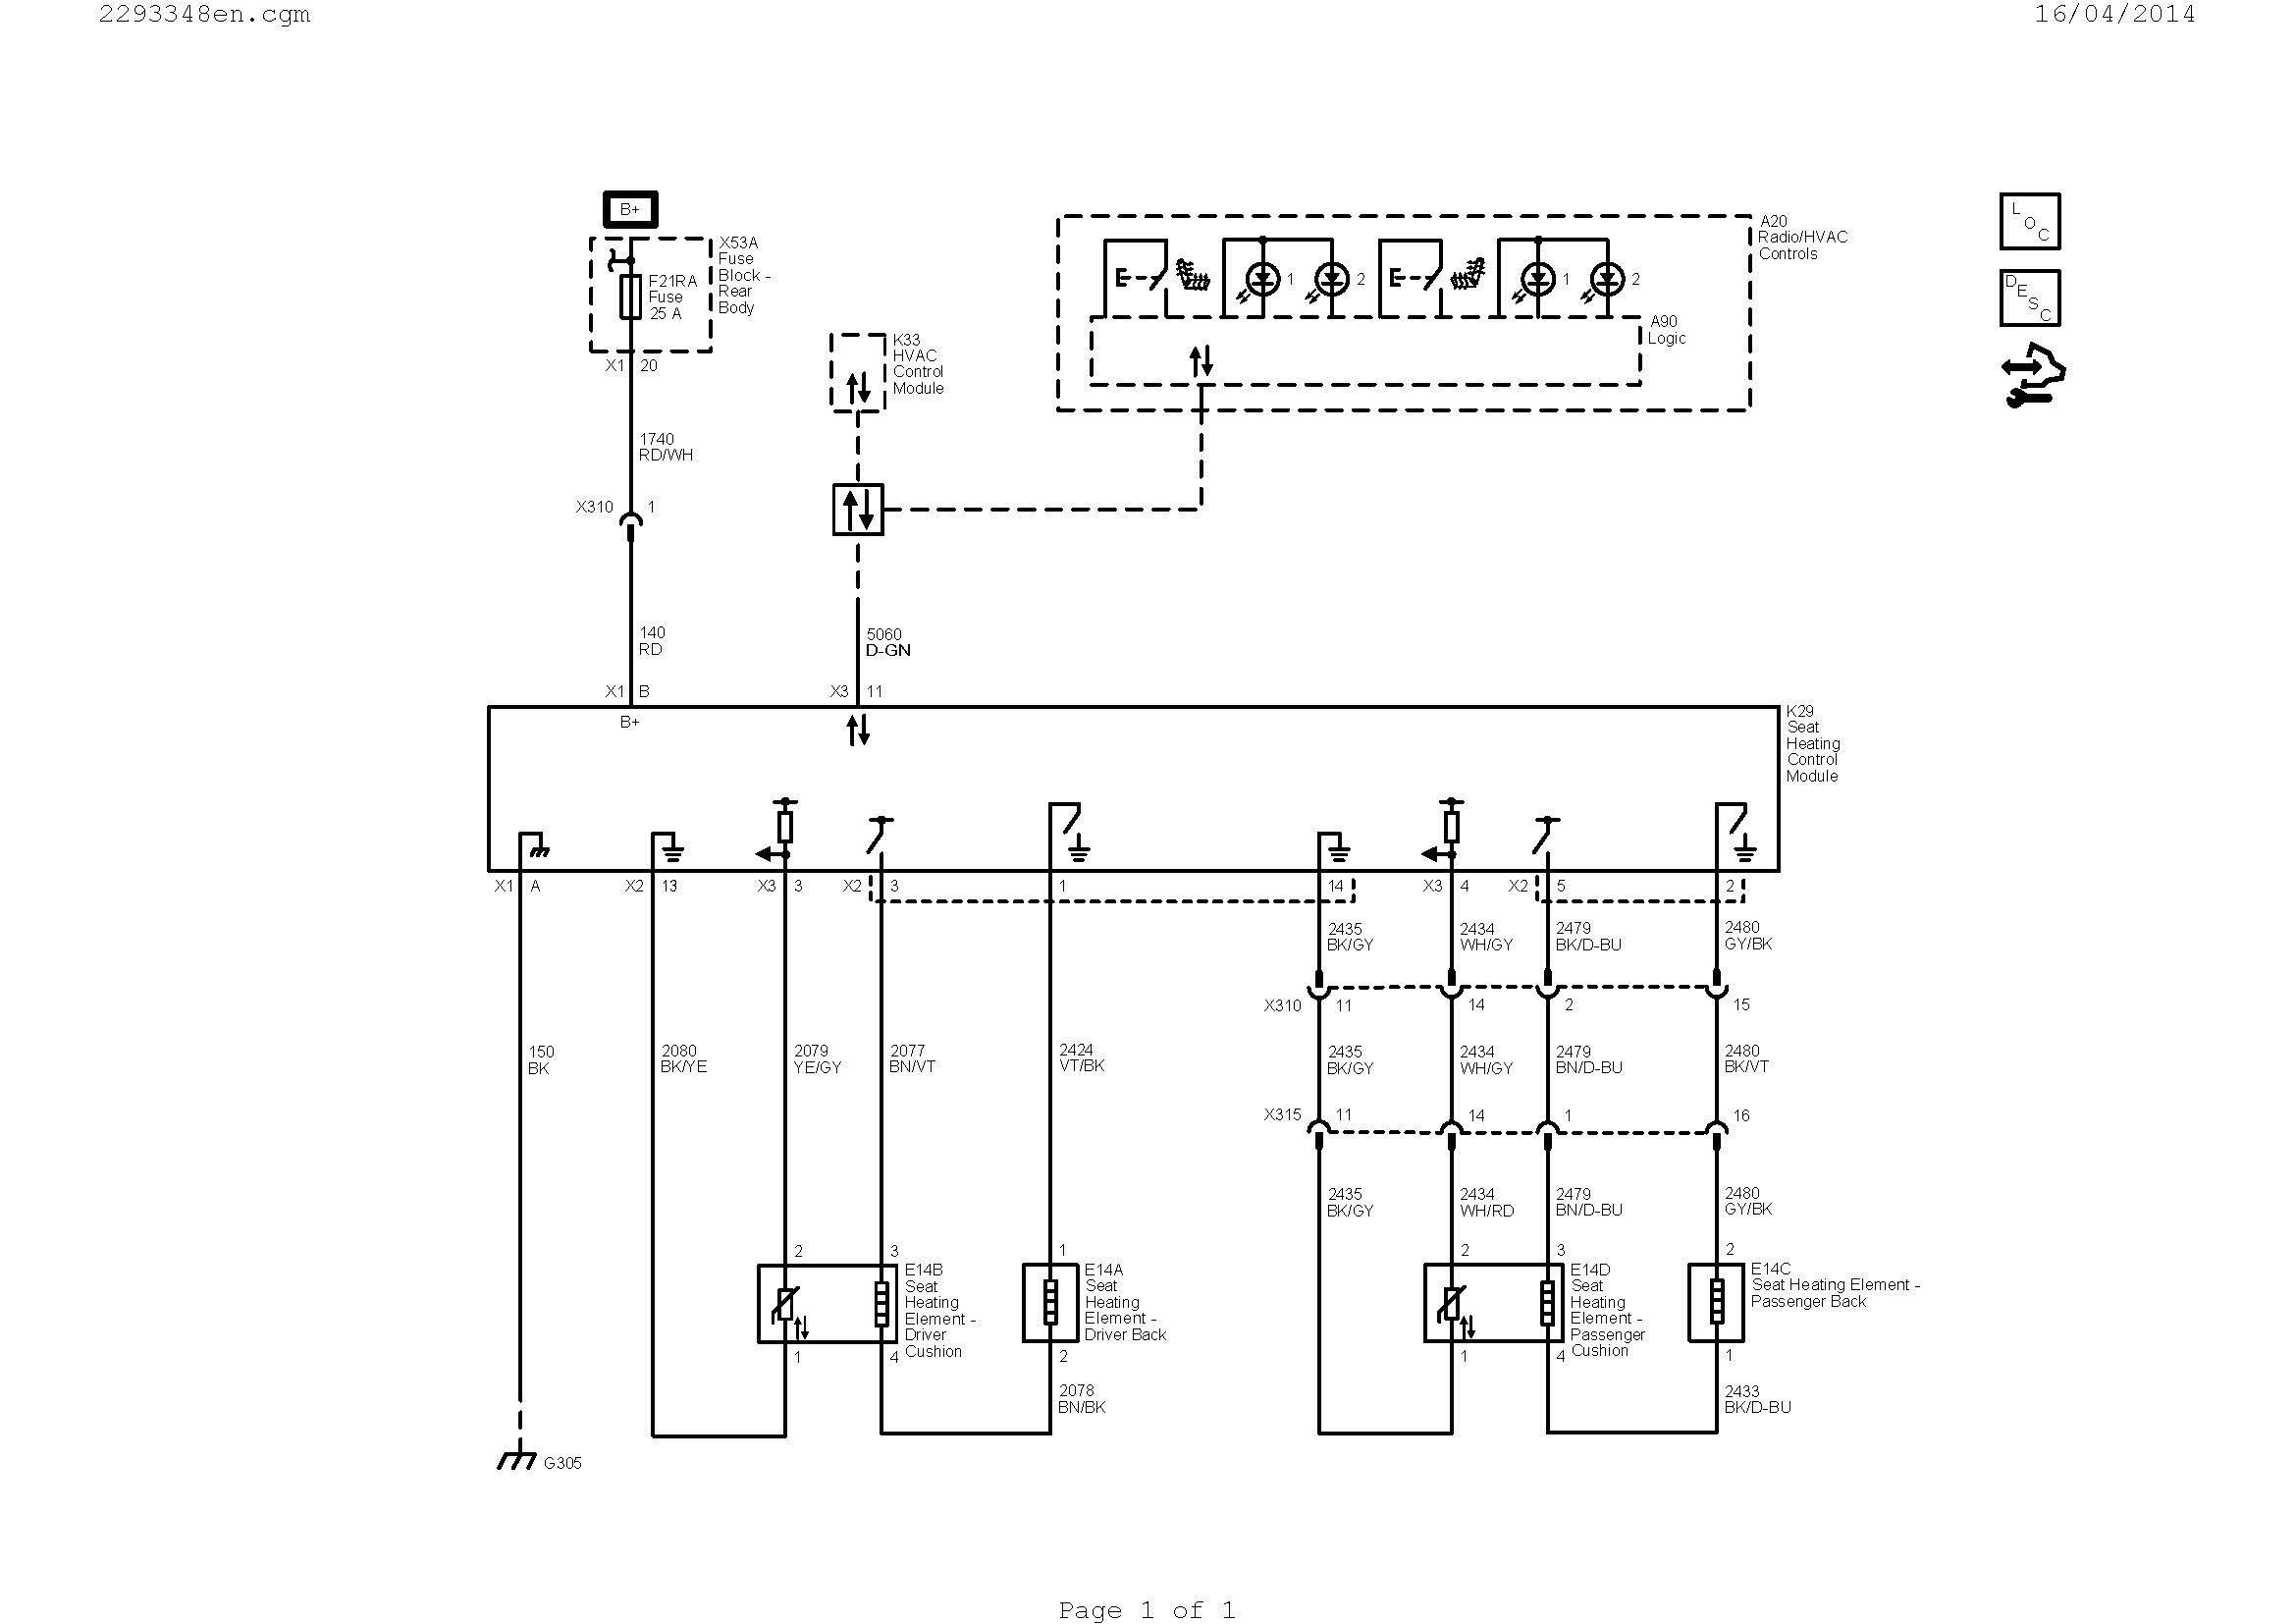 nordyne thermostat wiring diagram Collection-air conditioner wiring diagram picture Collection Wiring A Ac Thermostat Diagram New Wiring Diagram Ac 4-l